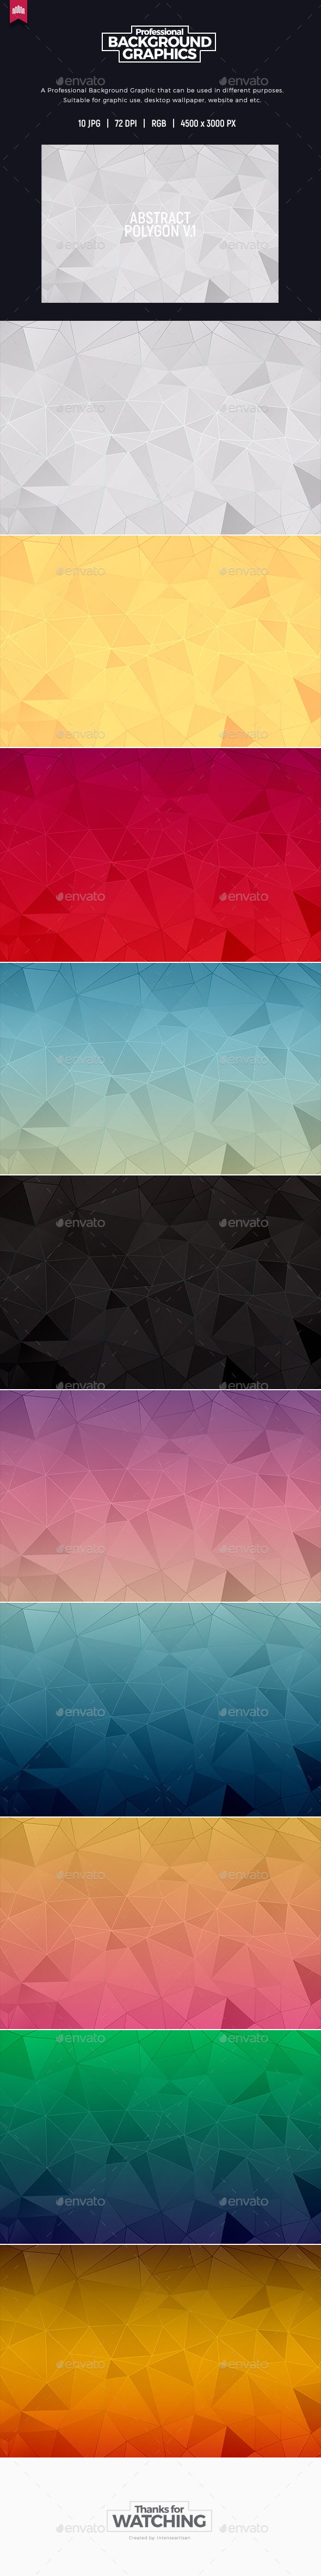 Abstract Polygon Background - Abstract Backgrounds